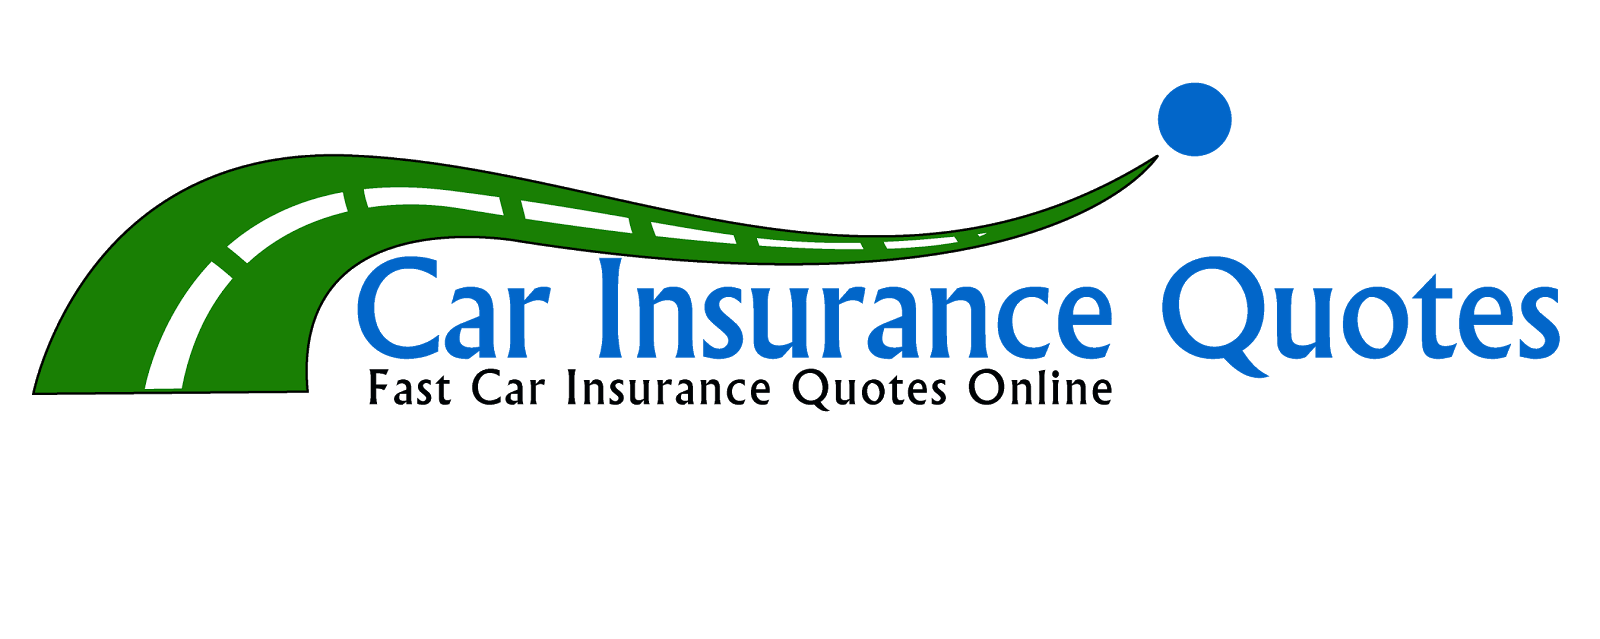 Online Insurance Quotes Glamorous Free Car Insurance Quotes Online  Places To Visit  Pinterest . Design Inspiration